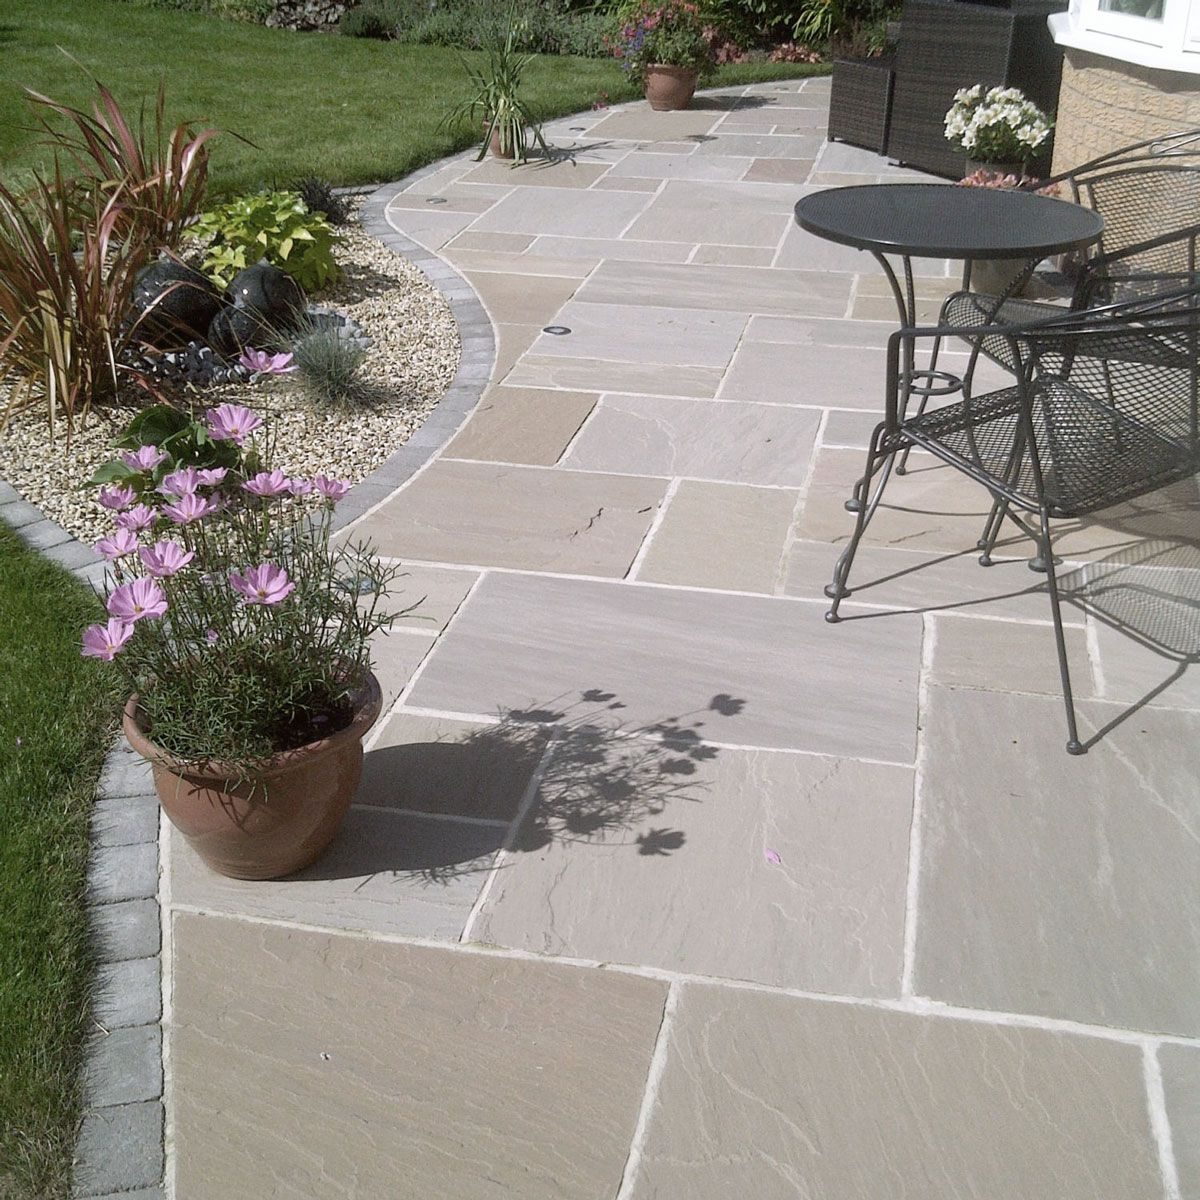 Patio Ideas With Existing Concrete Slab: Riven Sandstone Raj Blend